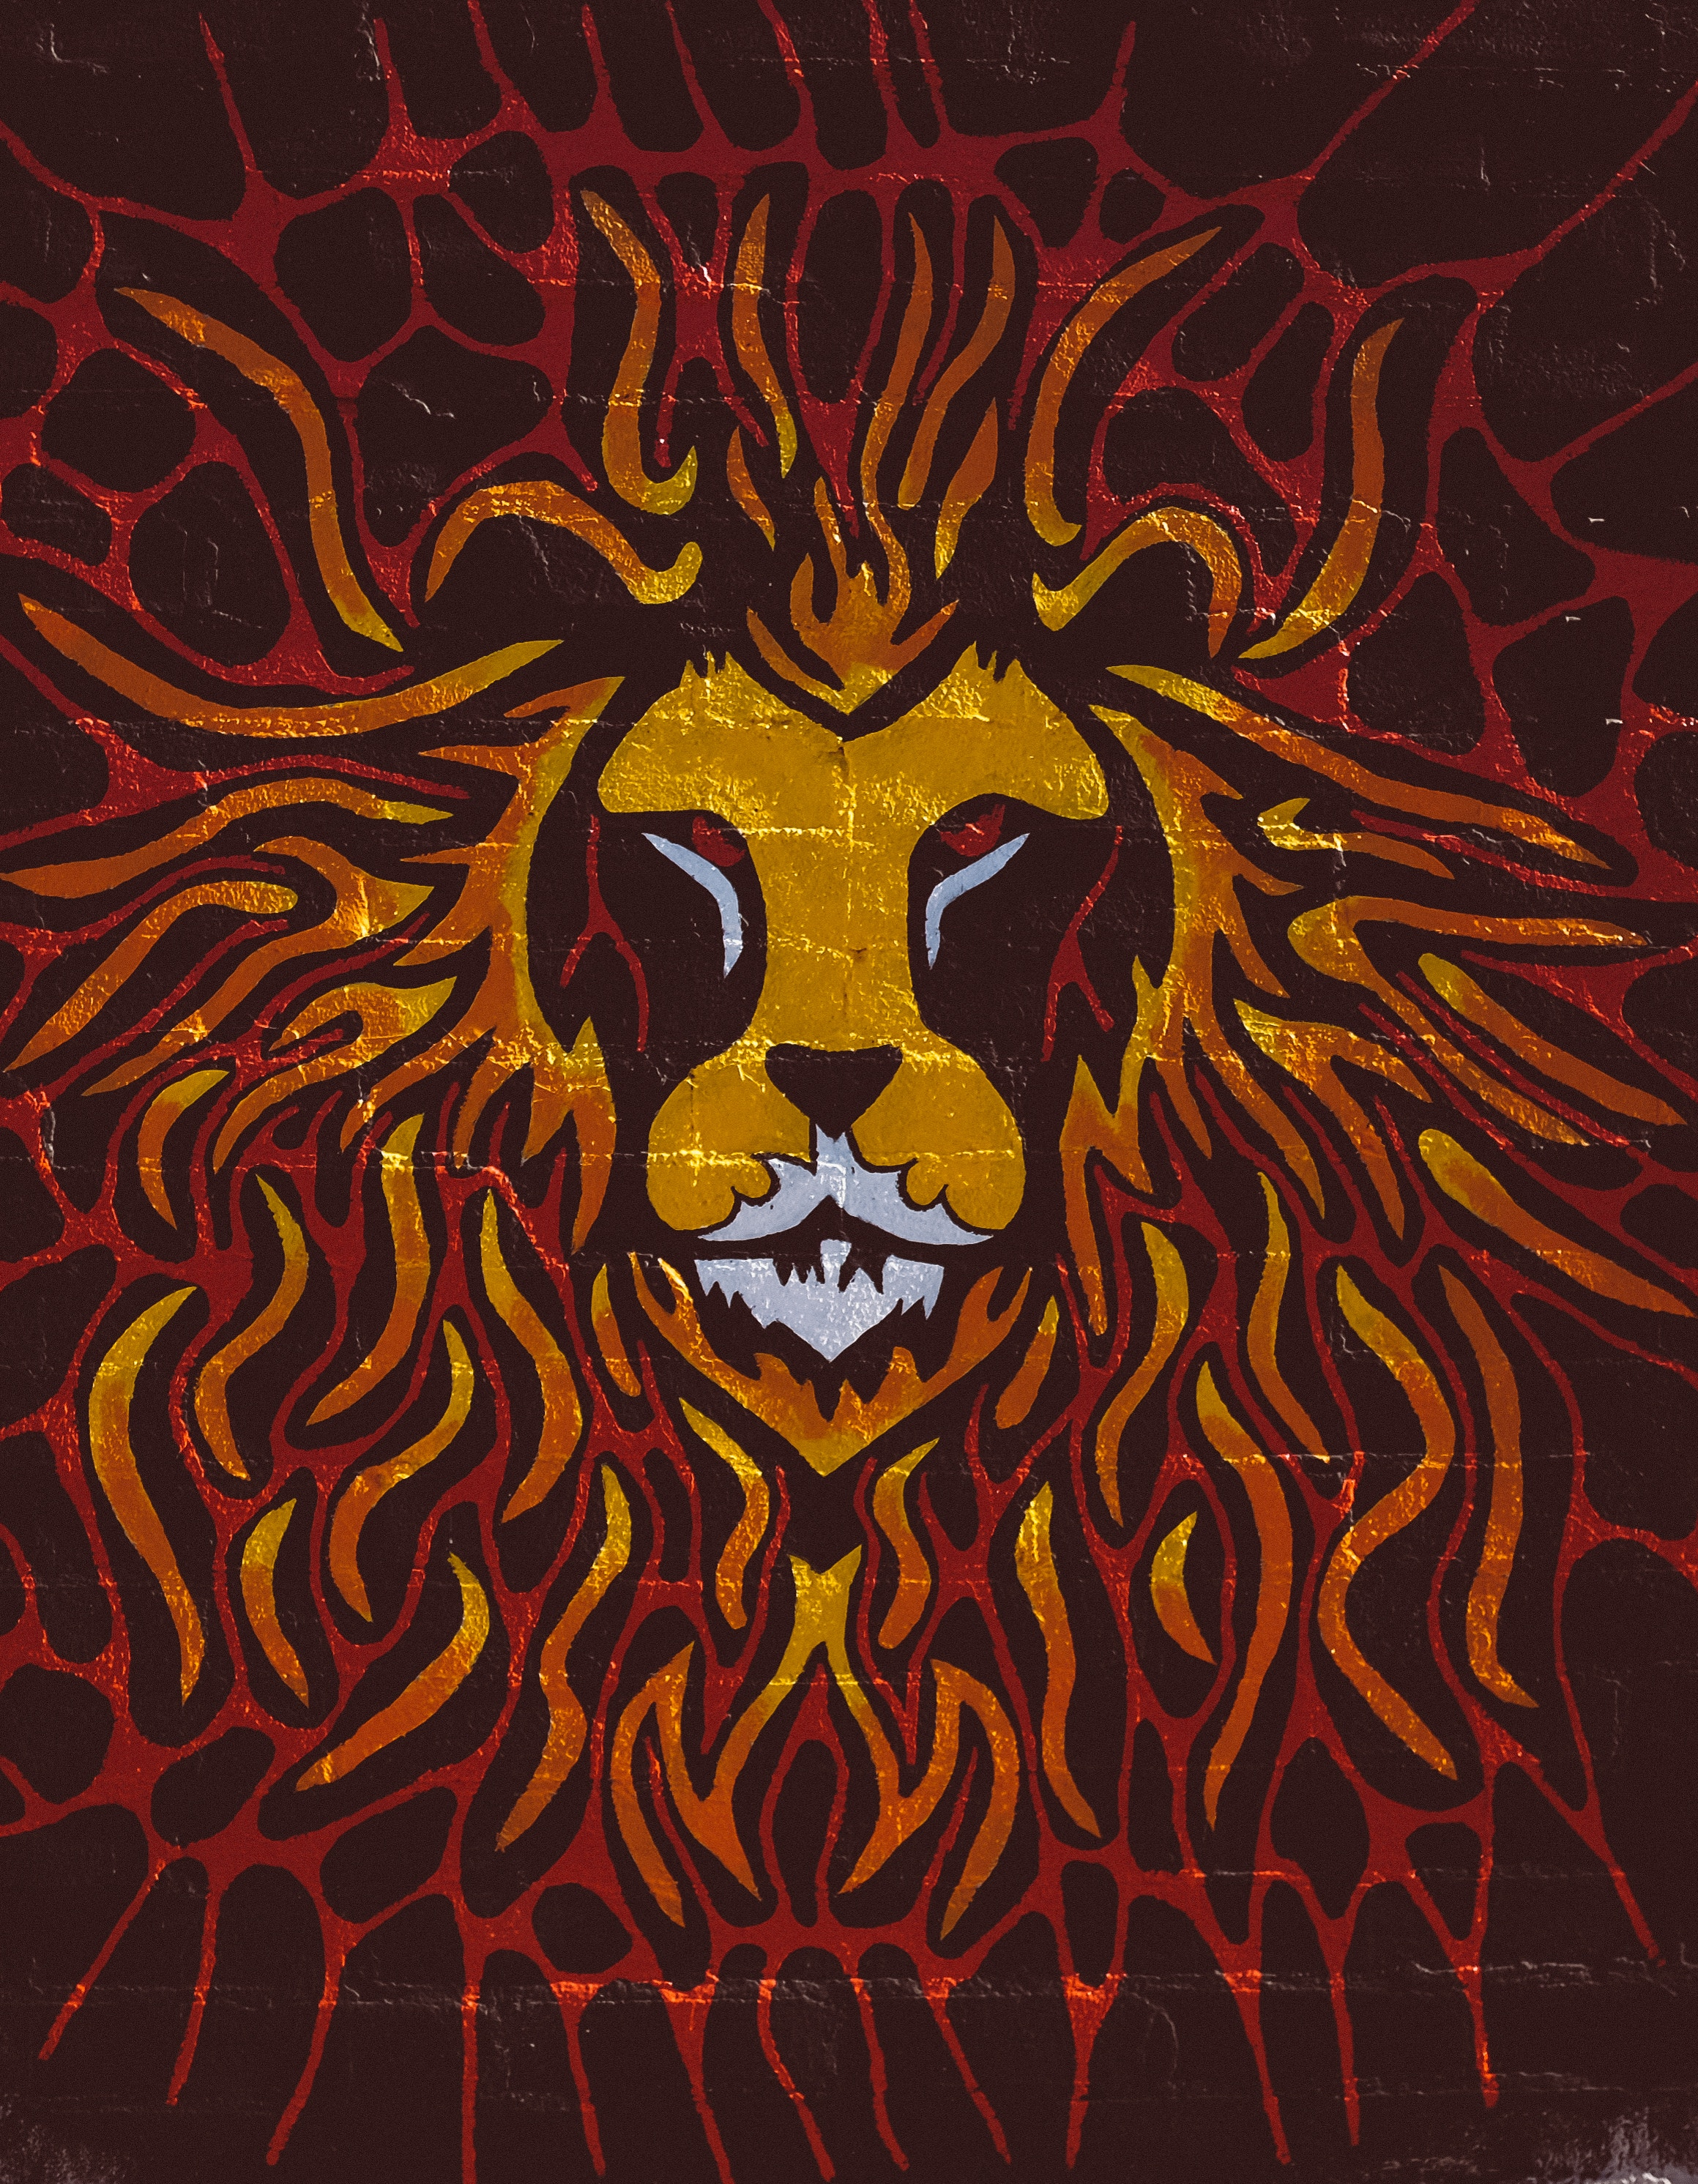 124309 download wallpaper Lion, Art, Wall, Graffiti screensavers and pictures for free